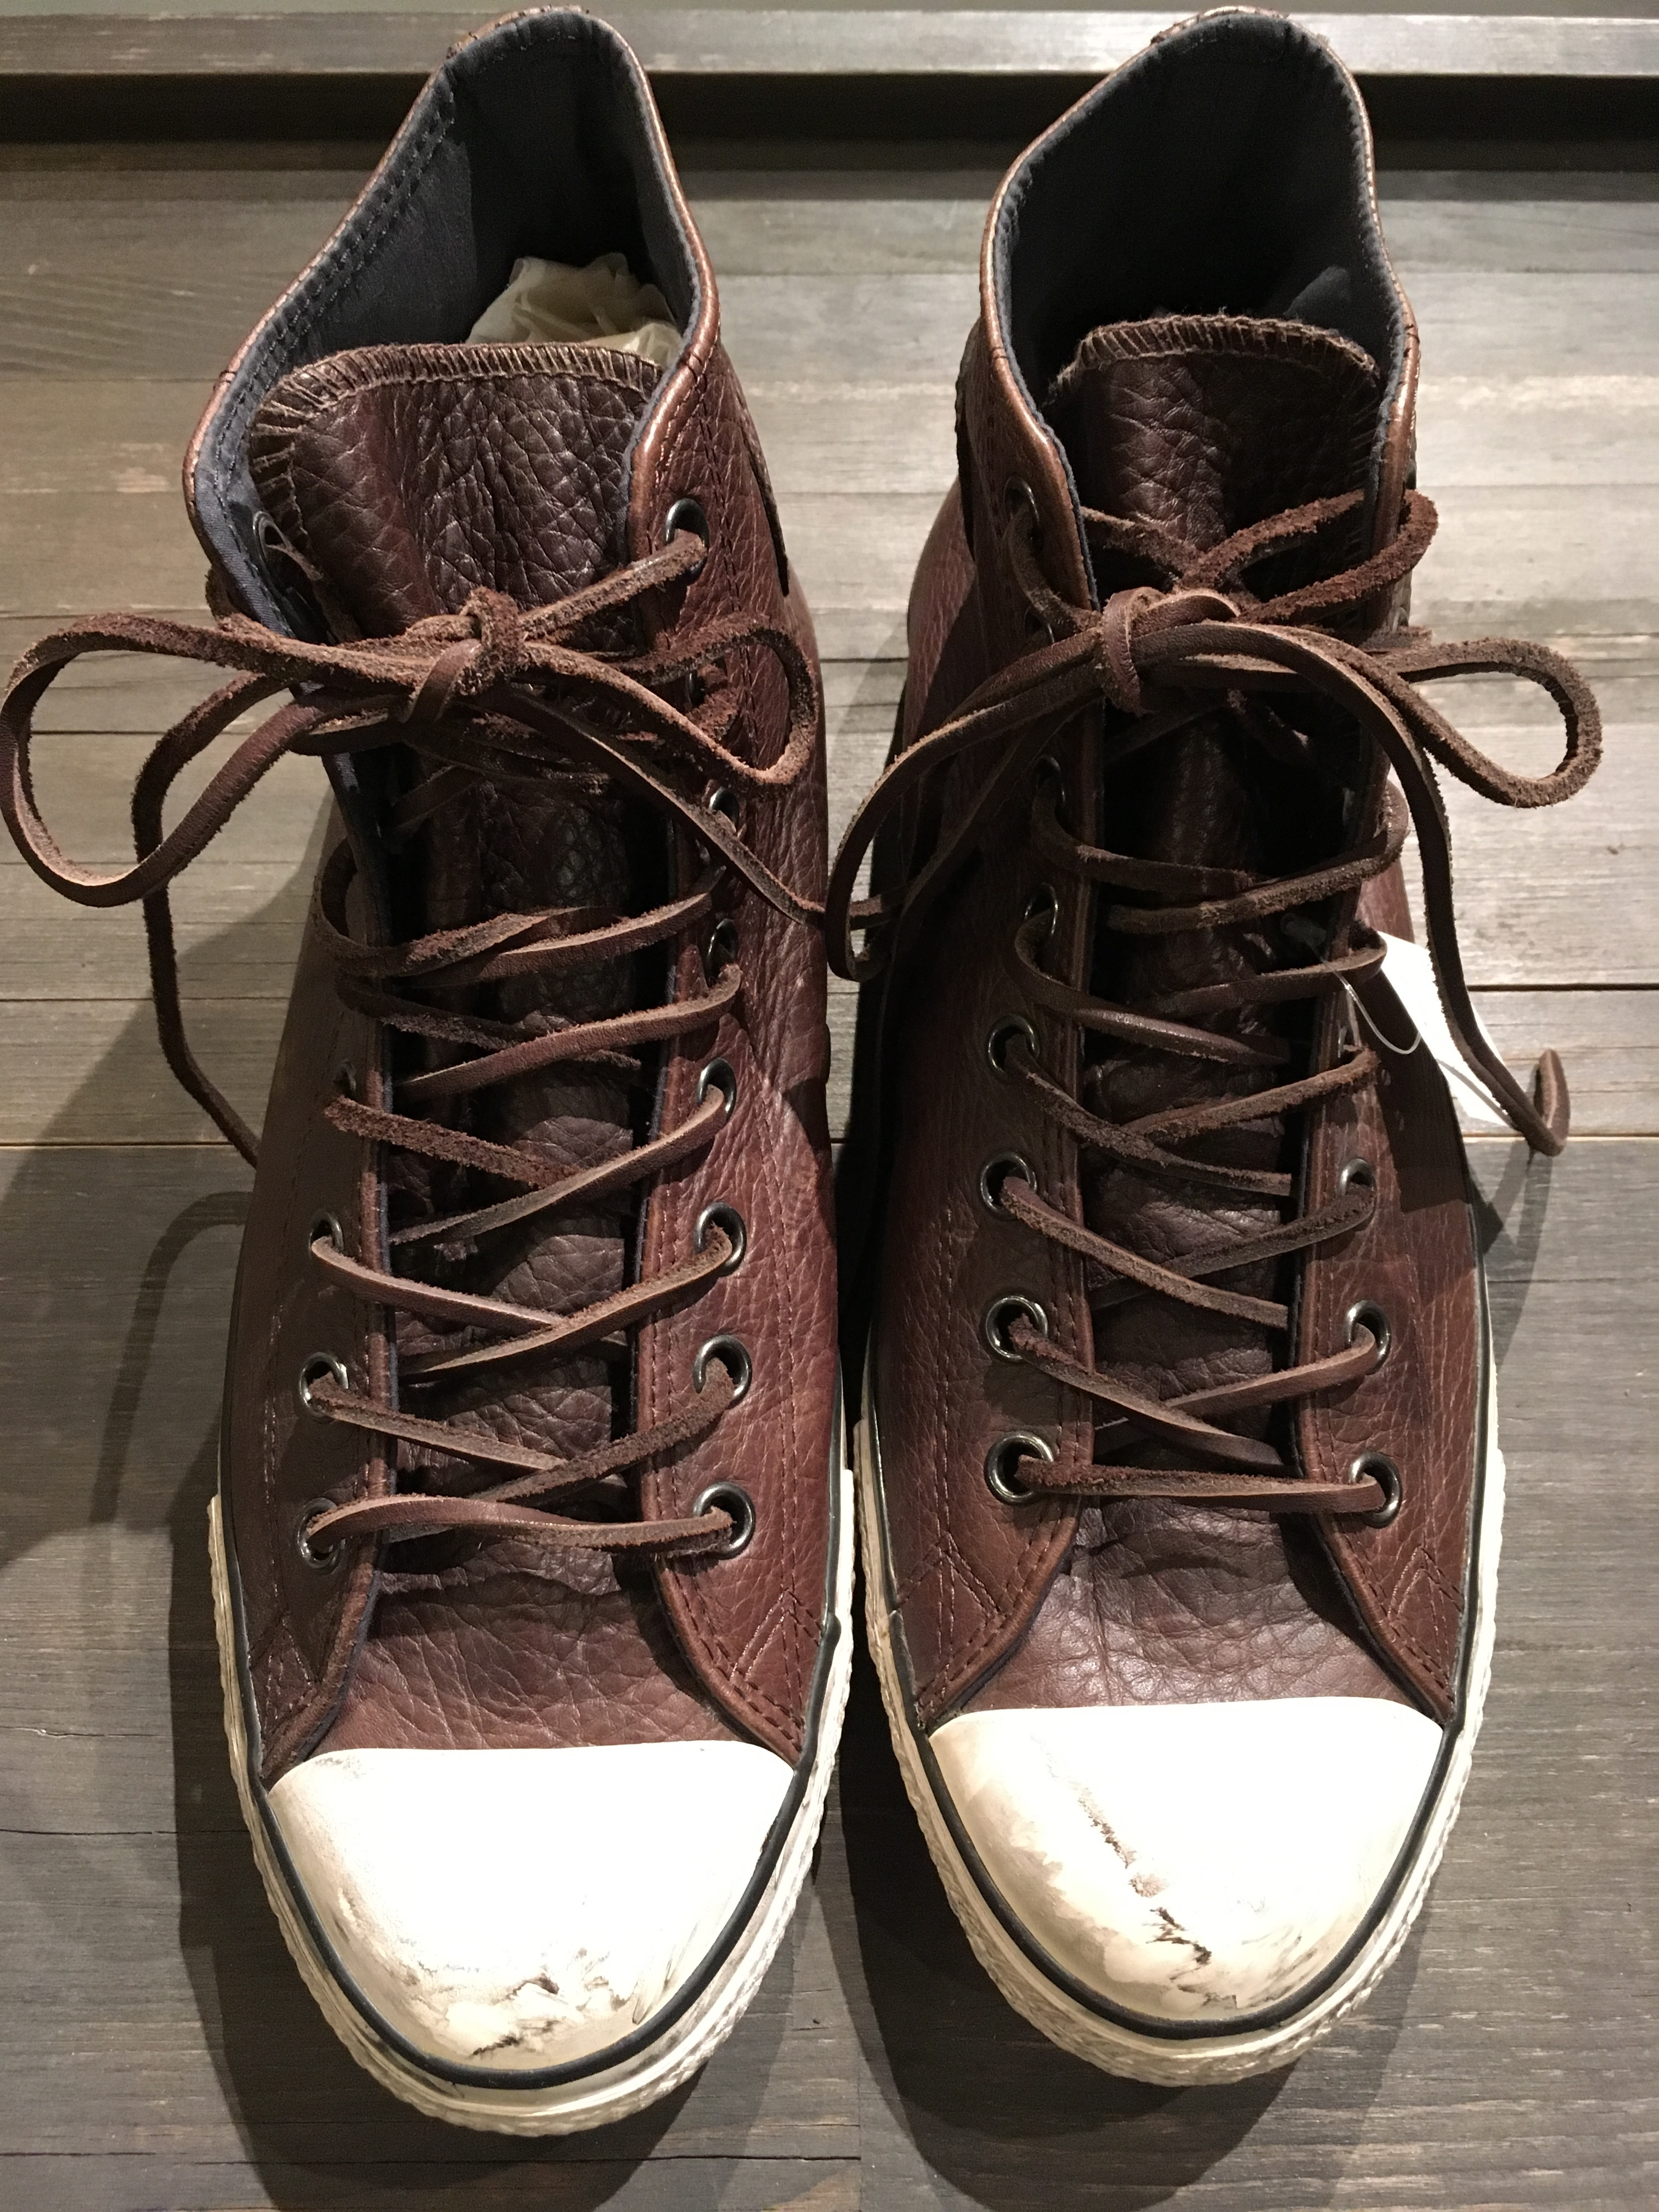 CONVERSE ALL STAR J/VALVAT U.S.A ヴィンテージスニーカー